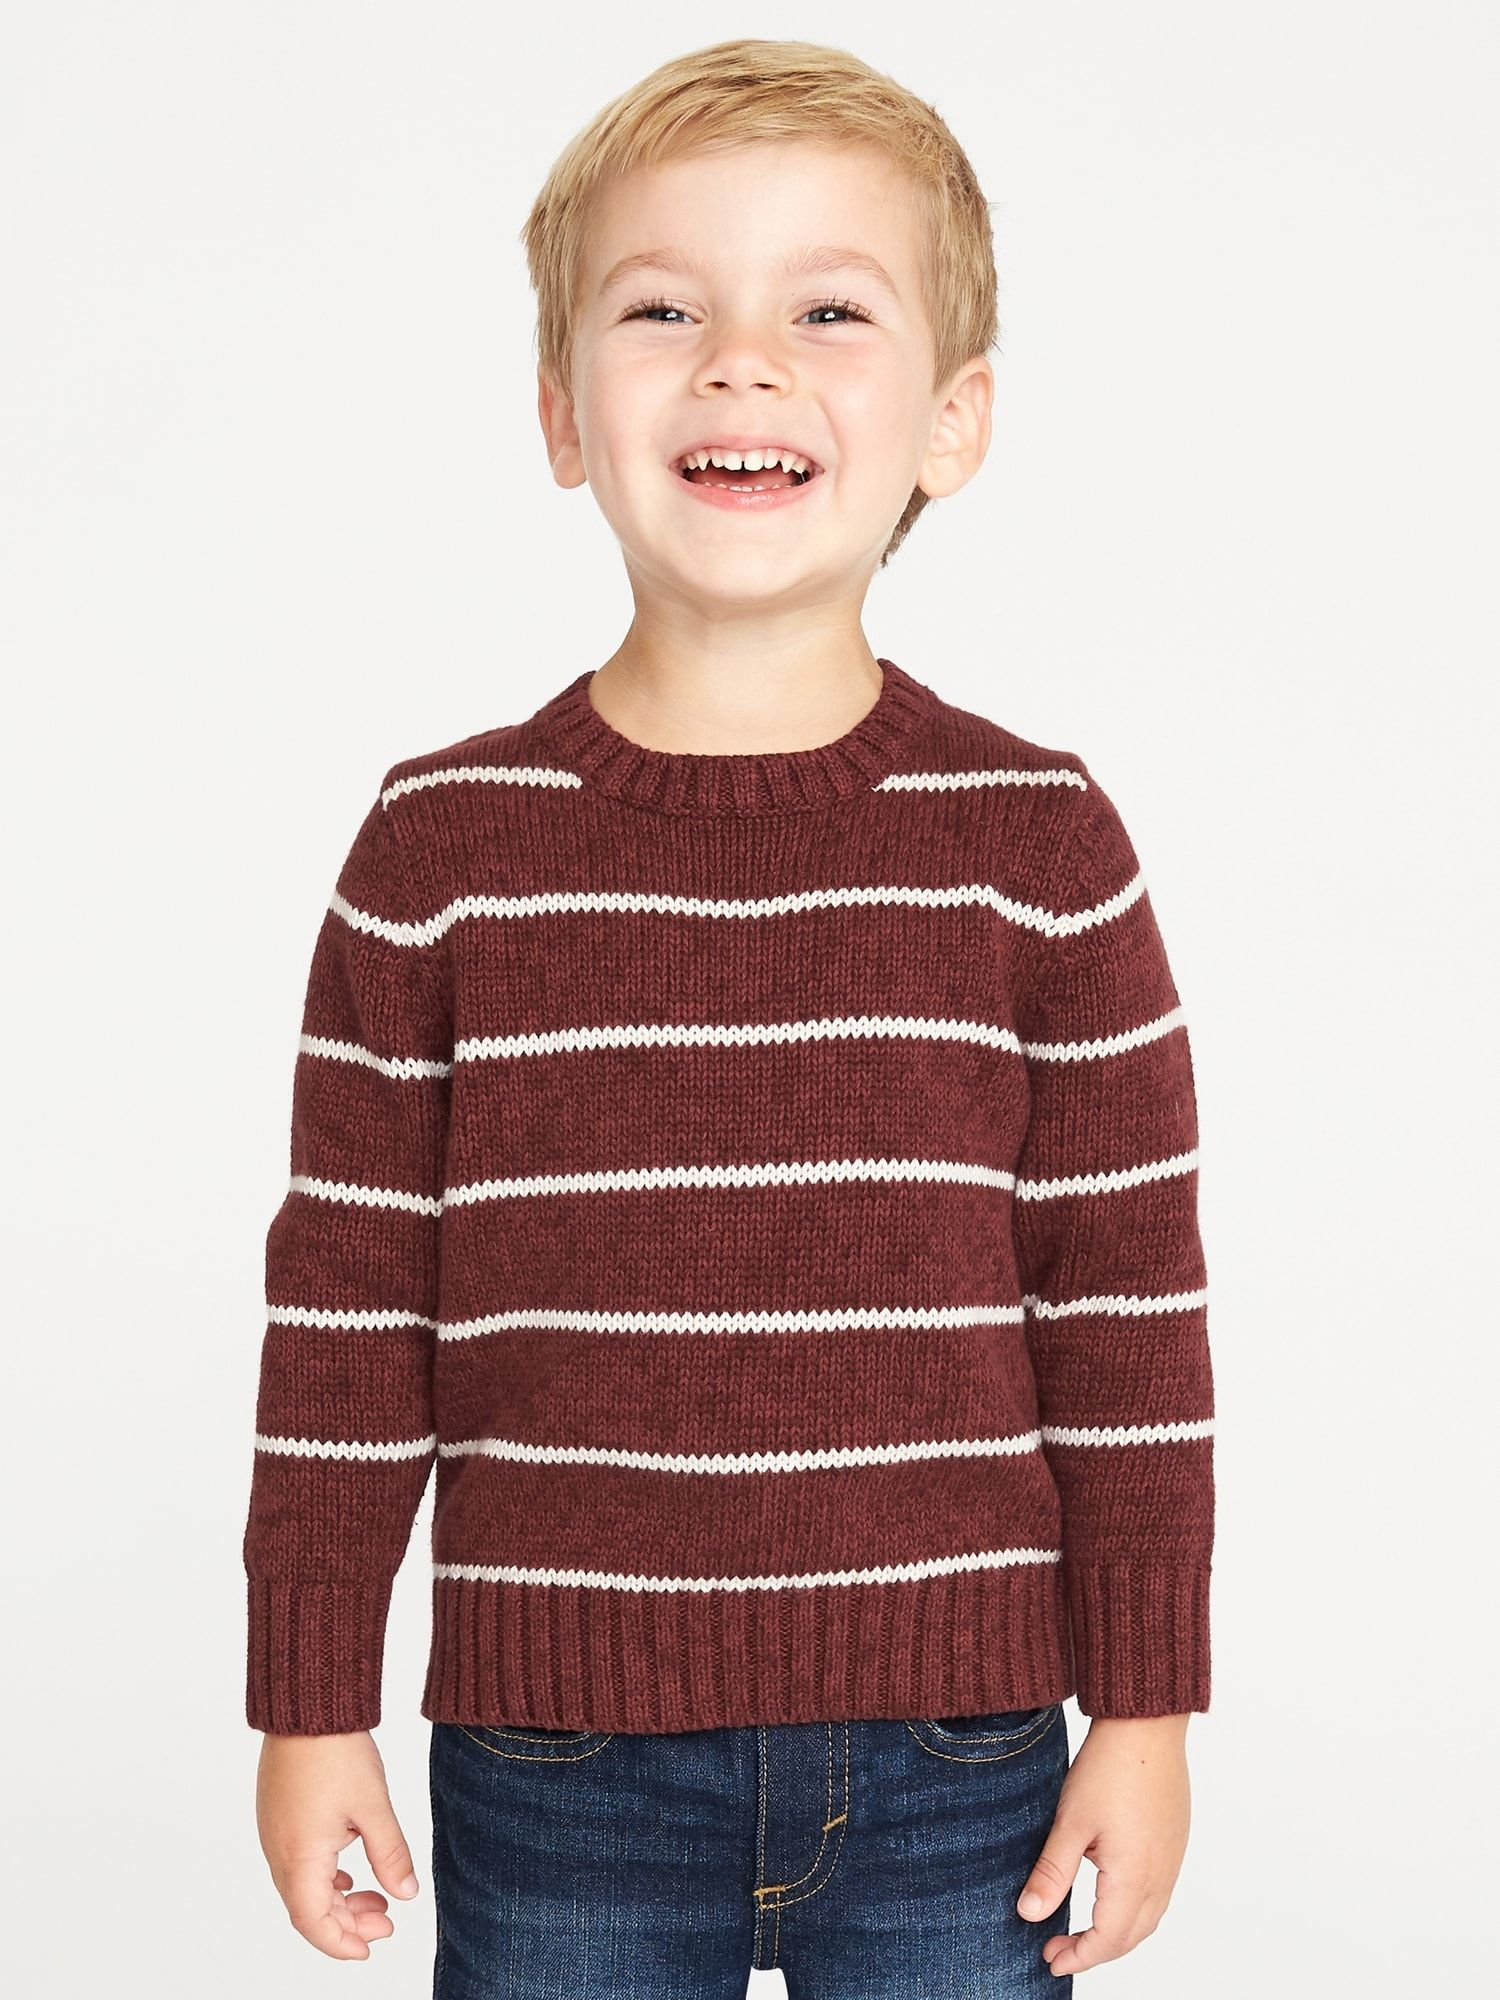 Striped Crew-Neck Sweater for Toddler Boys | Christmas Mini Outfit ...